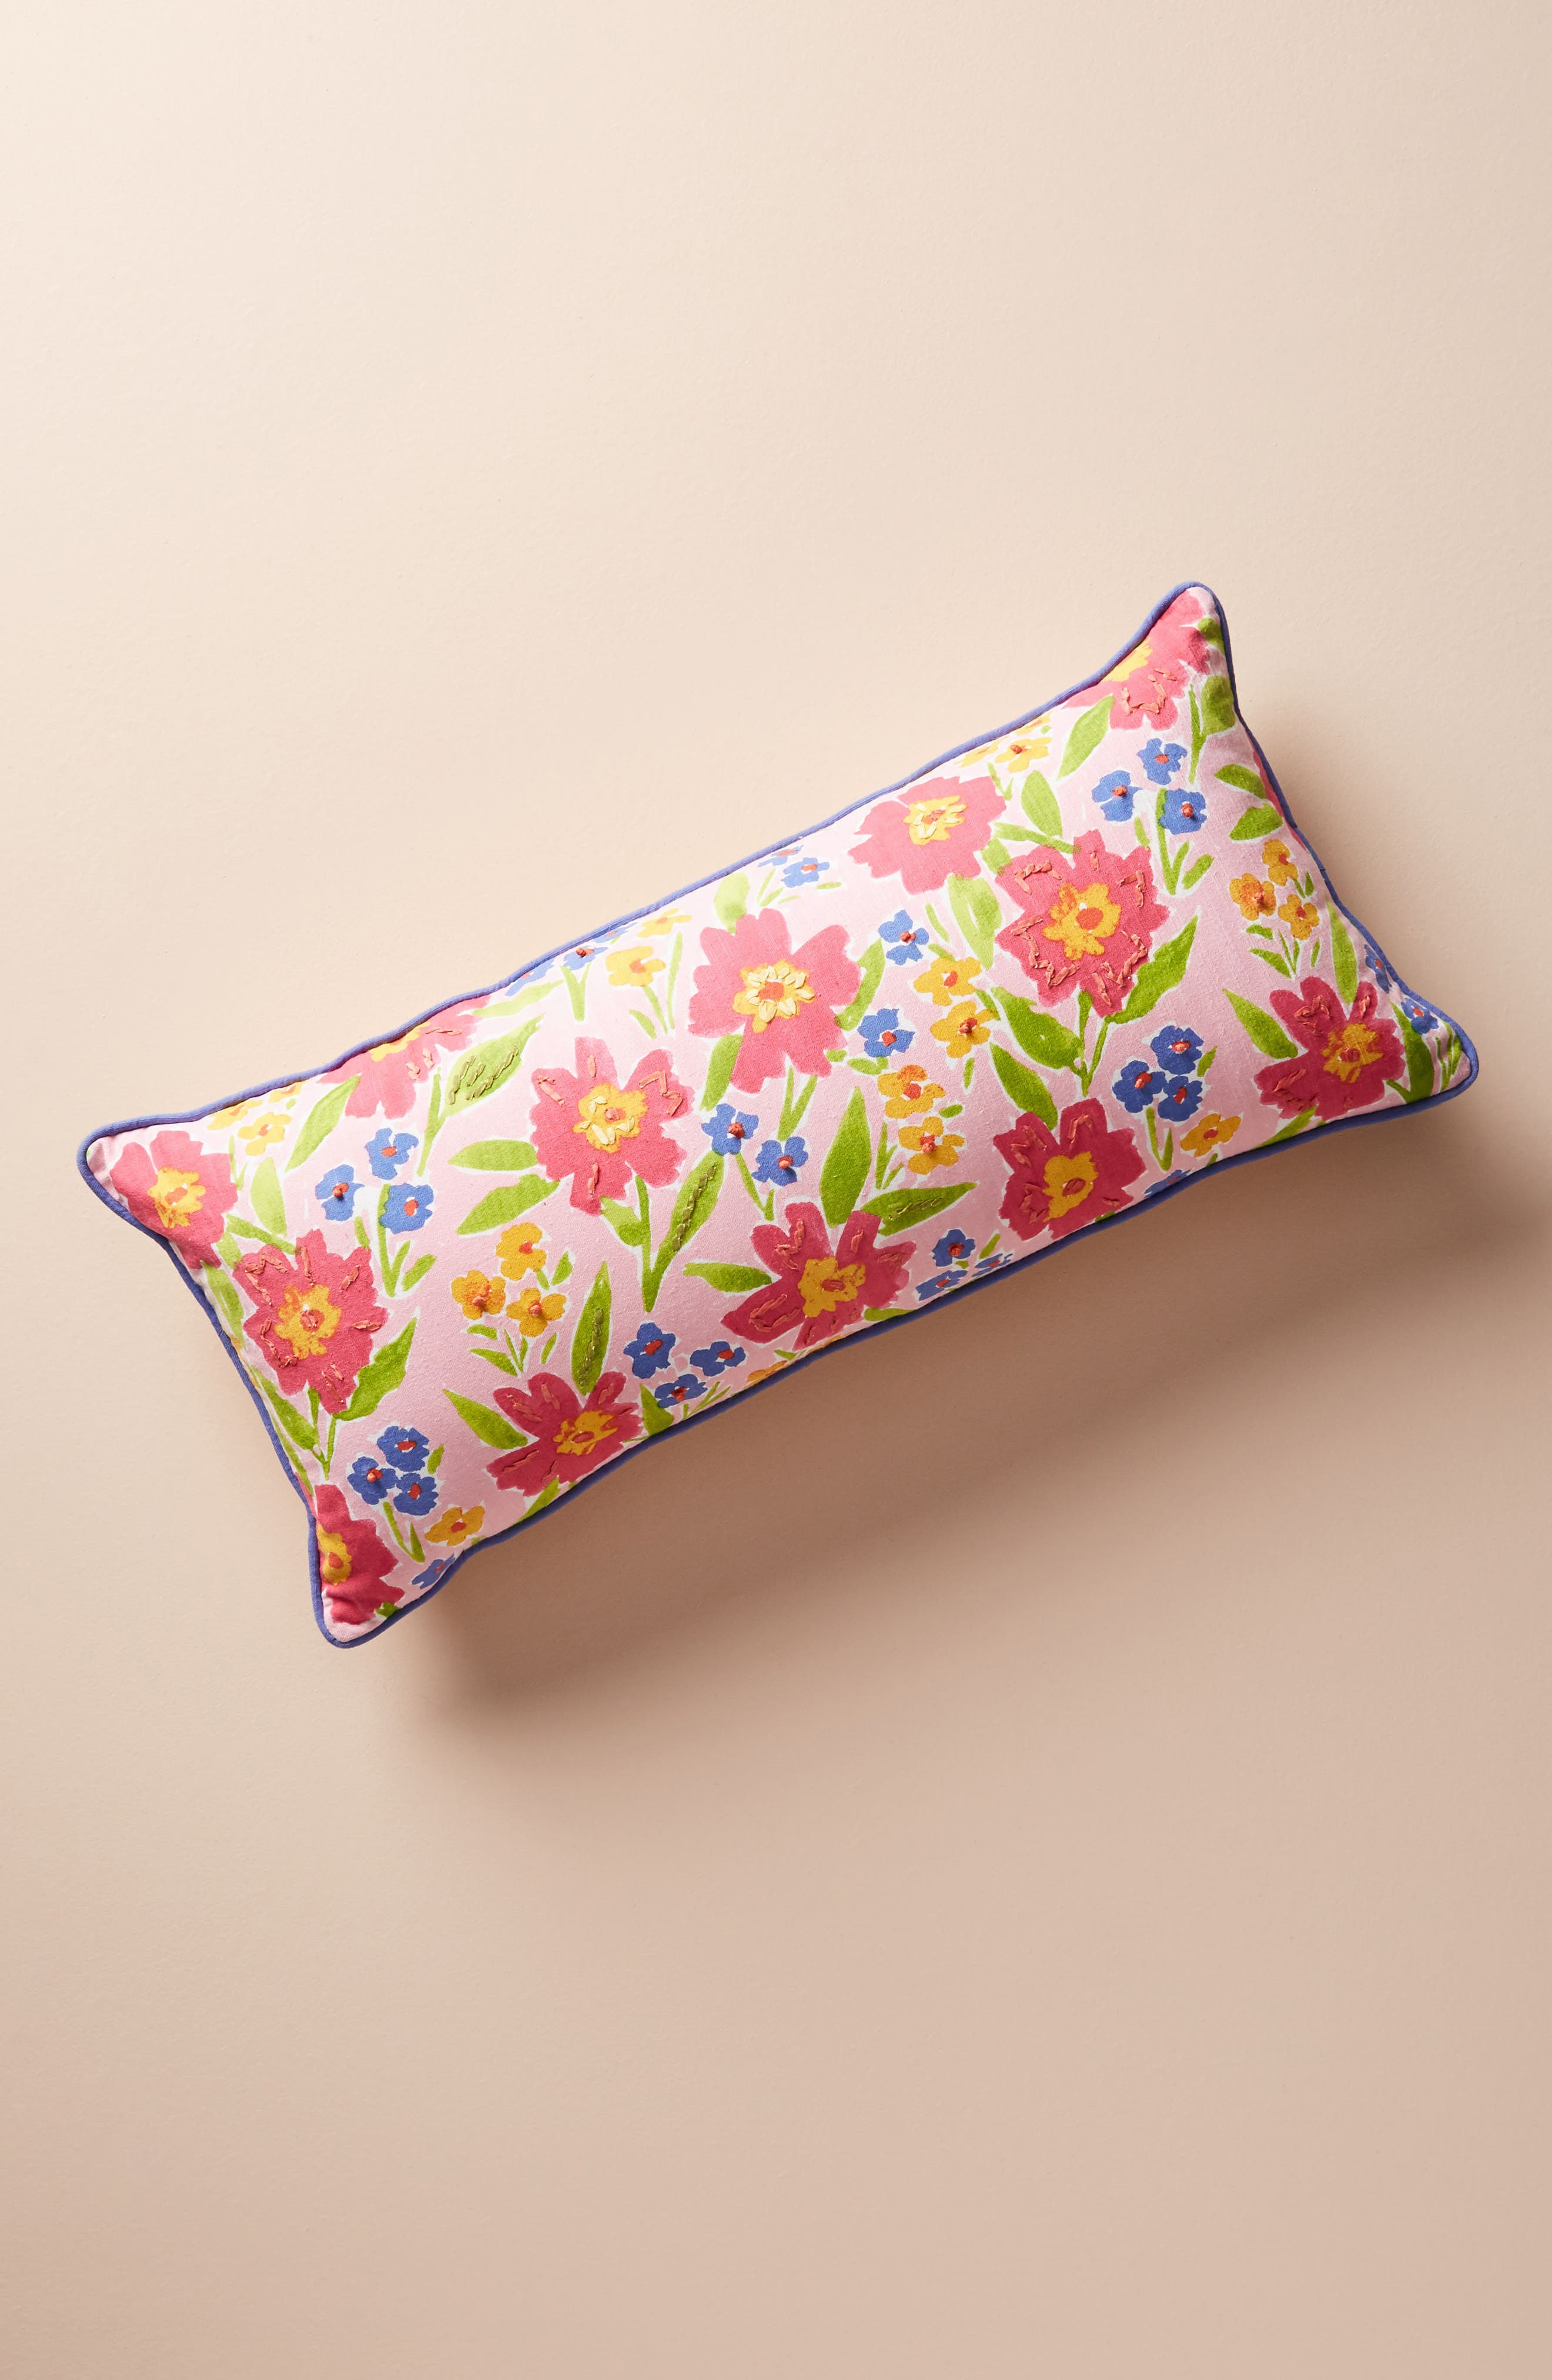 ANTHROPOLOGIE,                             Painted Poppies Accent Pillow,                             Main thumbnail 1, color,                             650